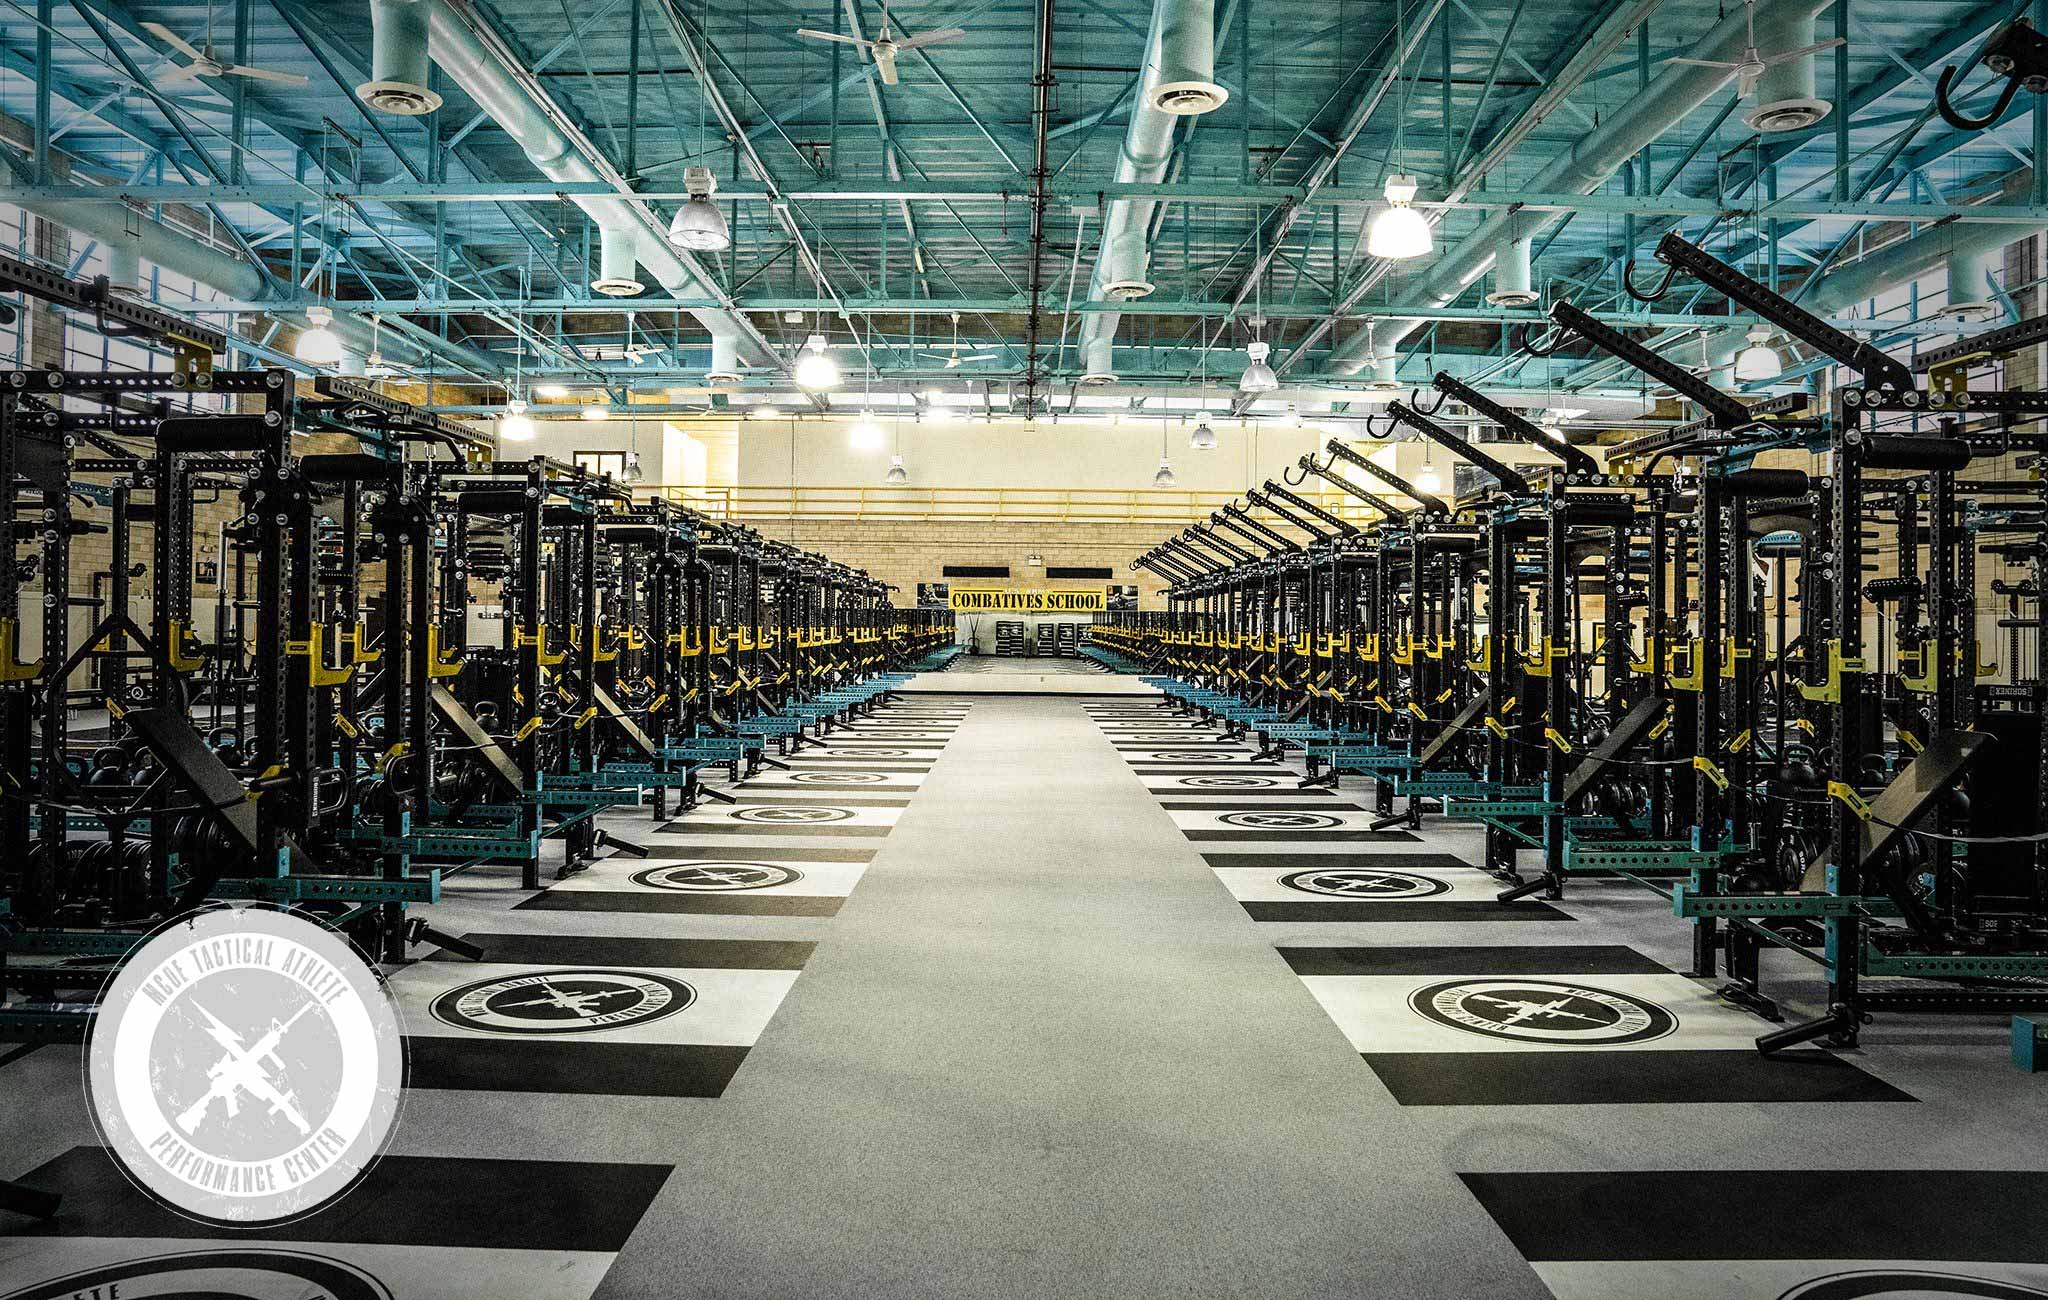 Fort Benning Sorinex strength and conditioning facility